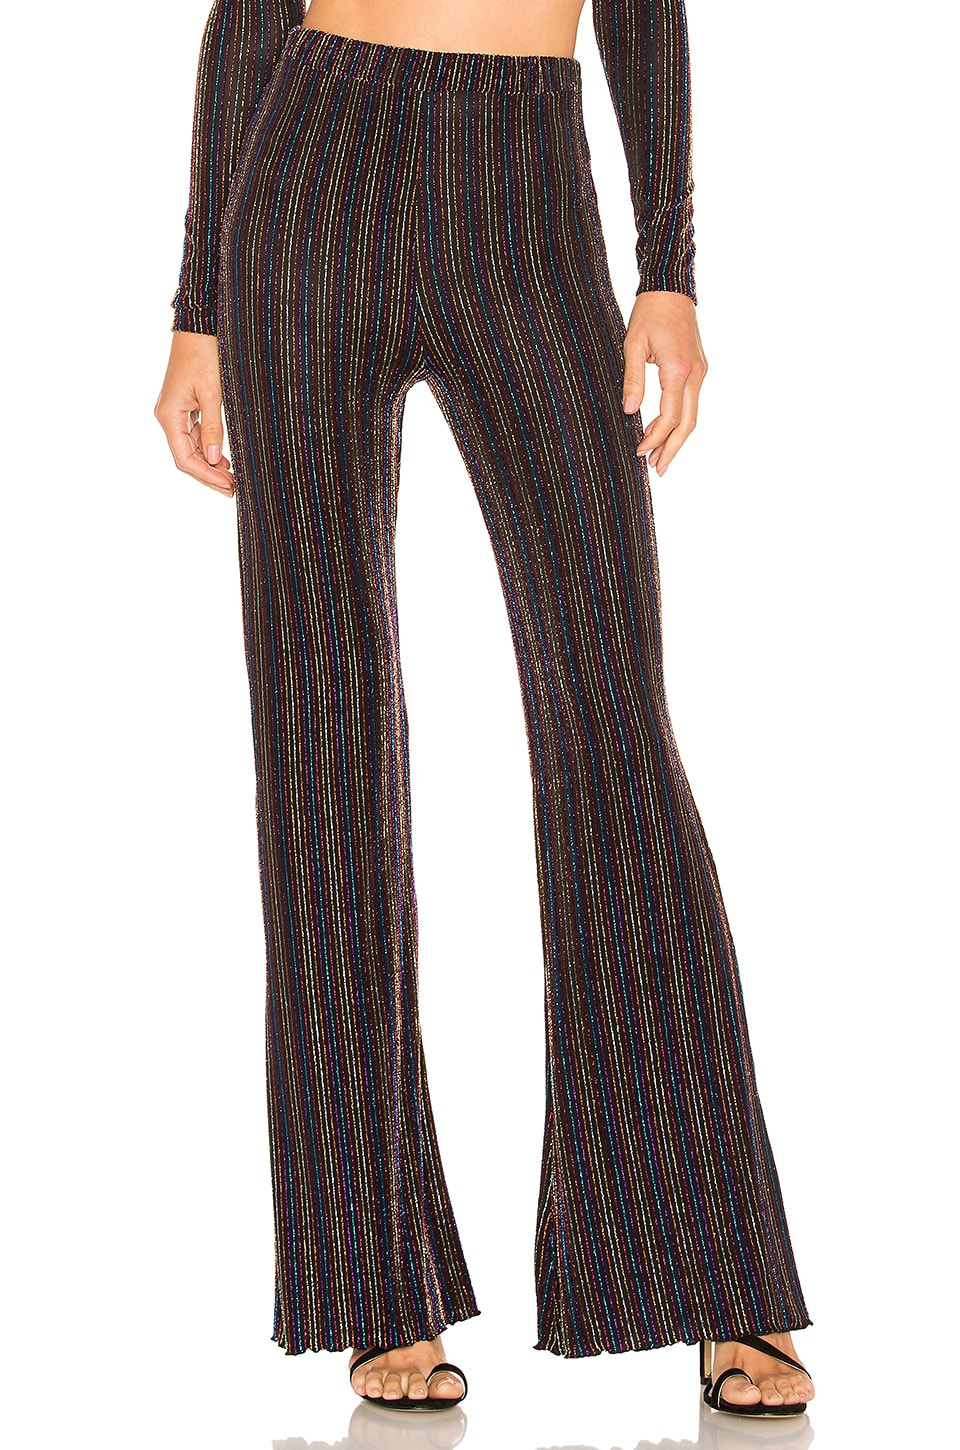 House of Harlow 1960 x REVOLVE Lora Pant in Noir